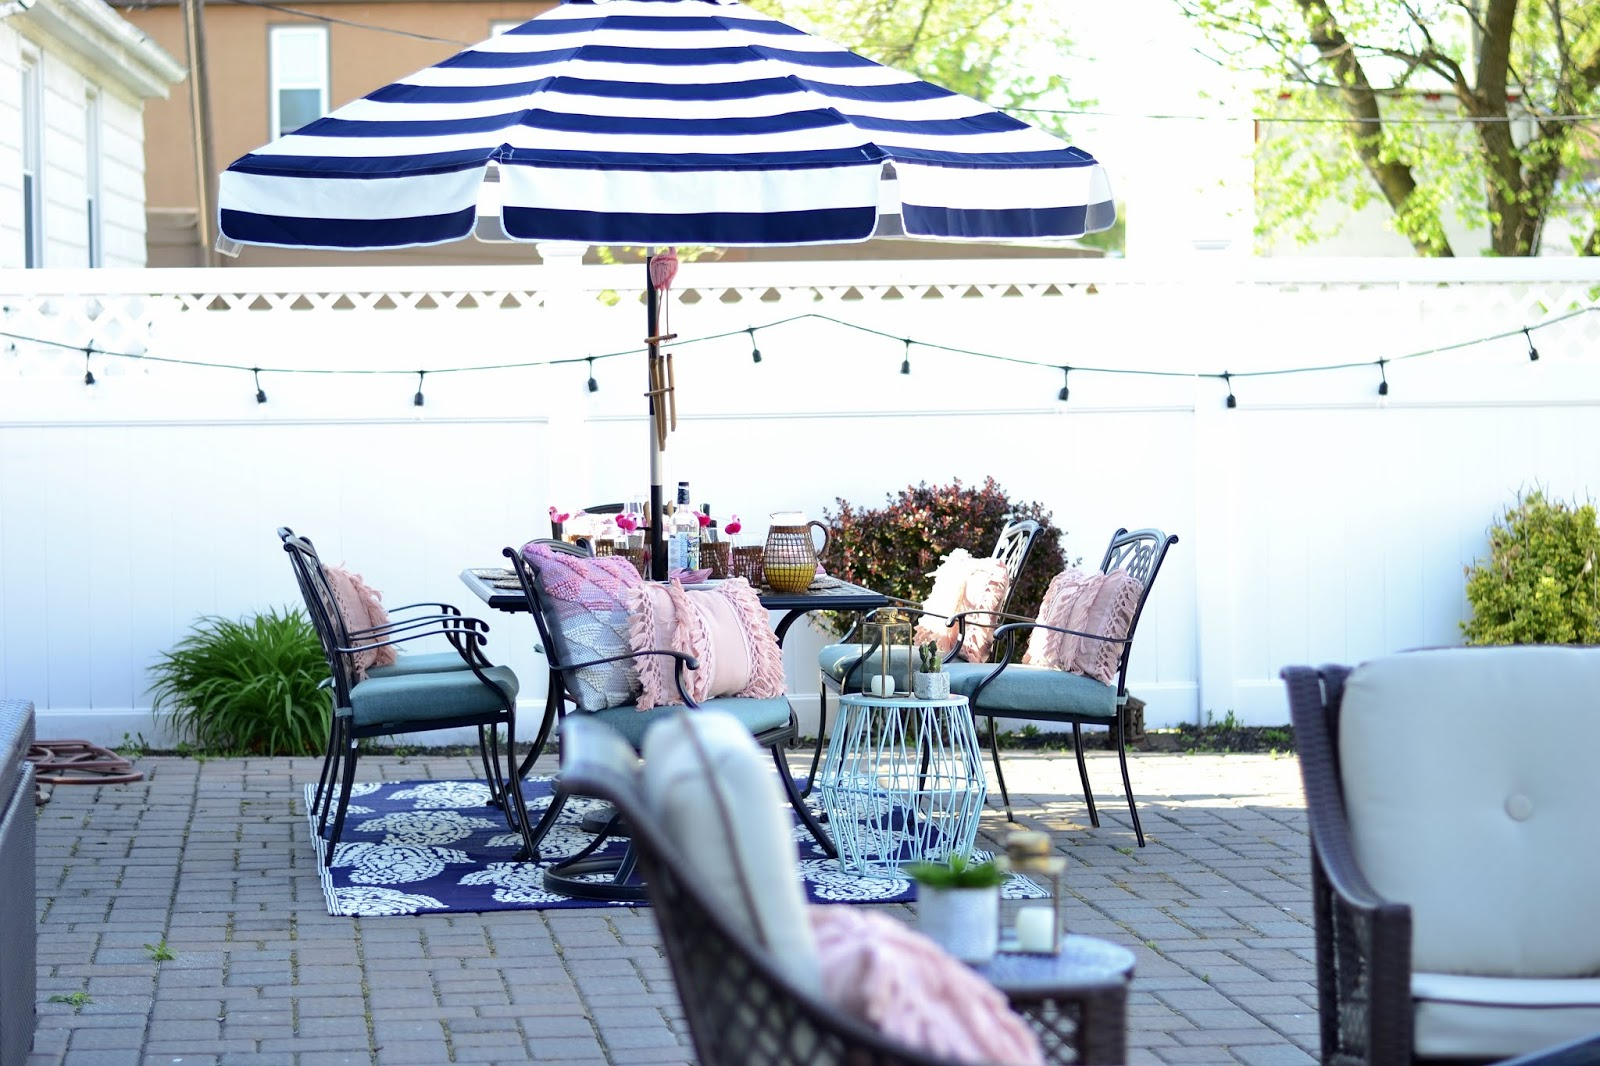 Home Décor Is Definitely One Of My Favorite Hobbies And By The Time Summer  Comes Around I Am Deep Into Revamping, Redecorating And Reorganizing Every  Room ...